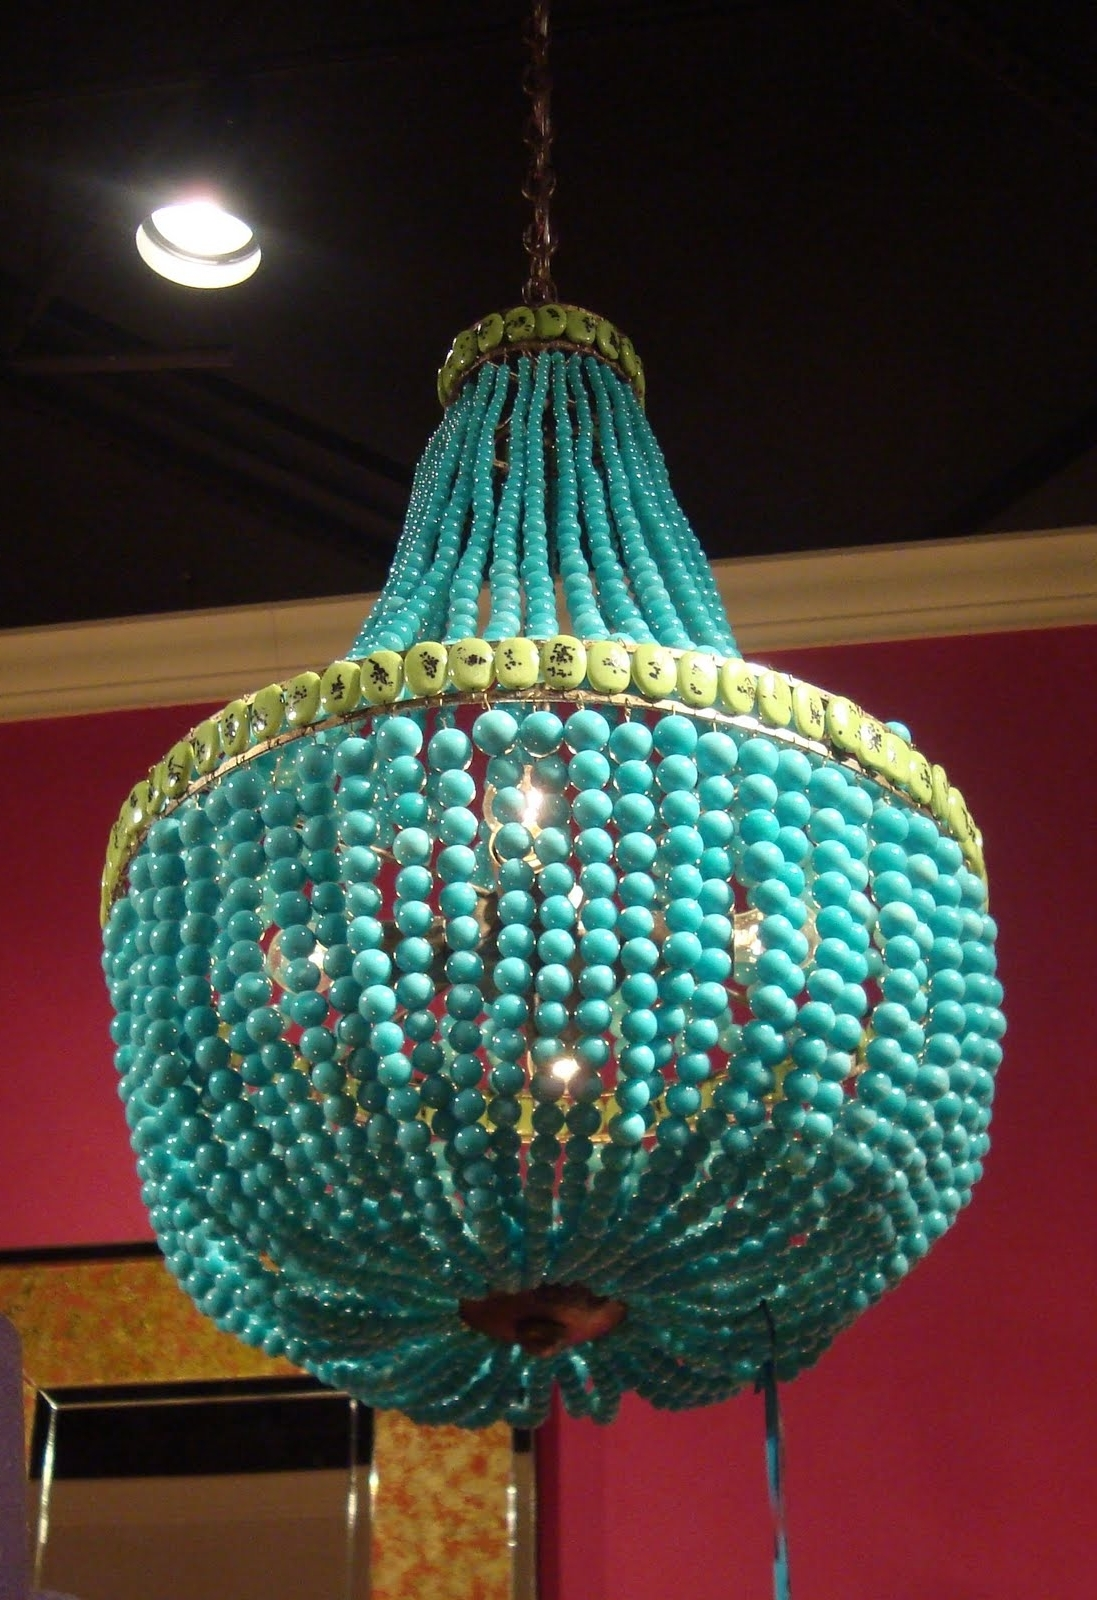 Turquoise Bubble Chandeliers Throughout Most Recently Released Turquoise Chandelier Lighting (View 17 of 20)